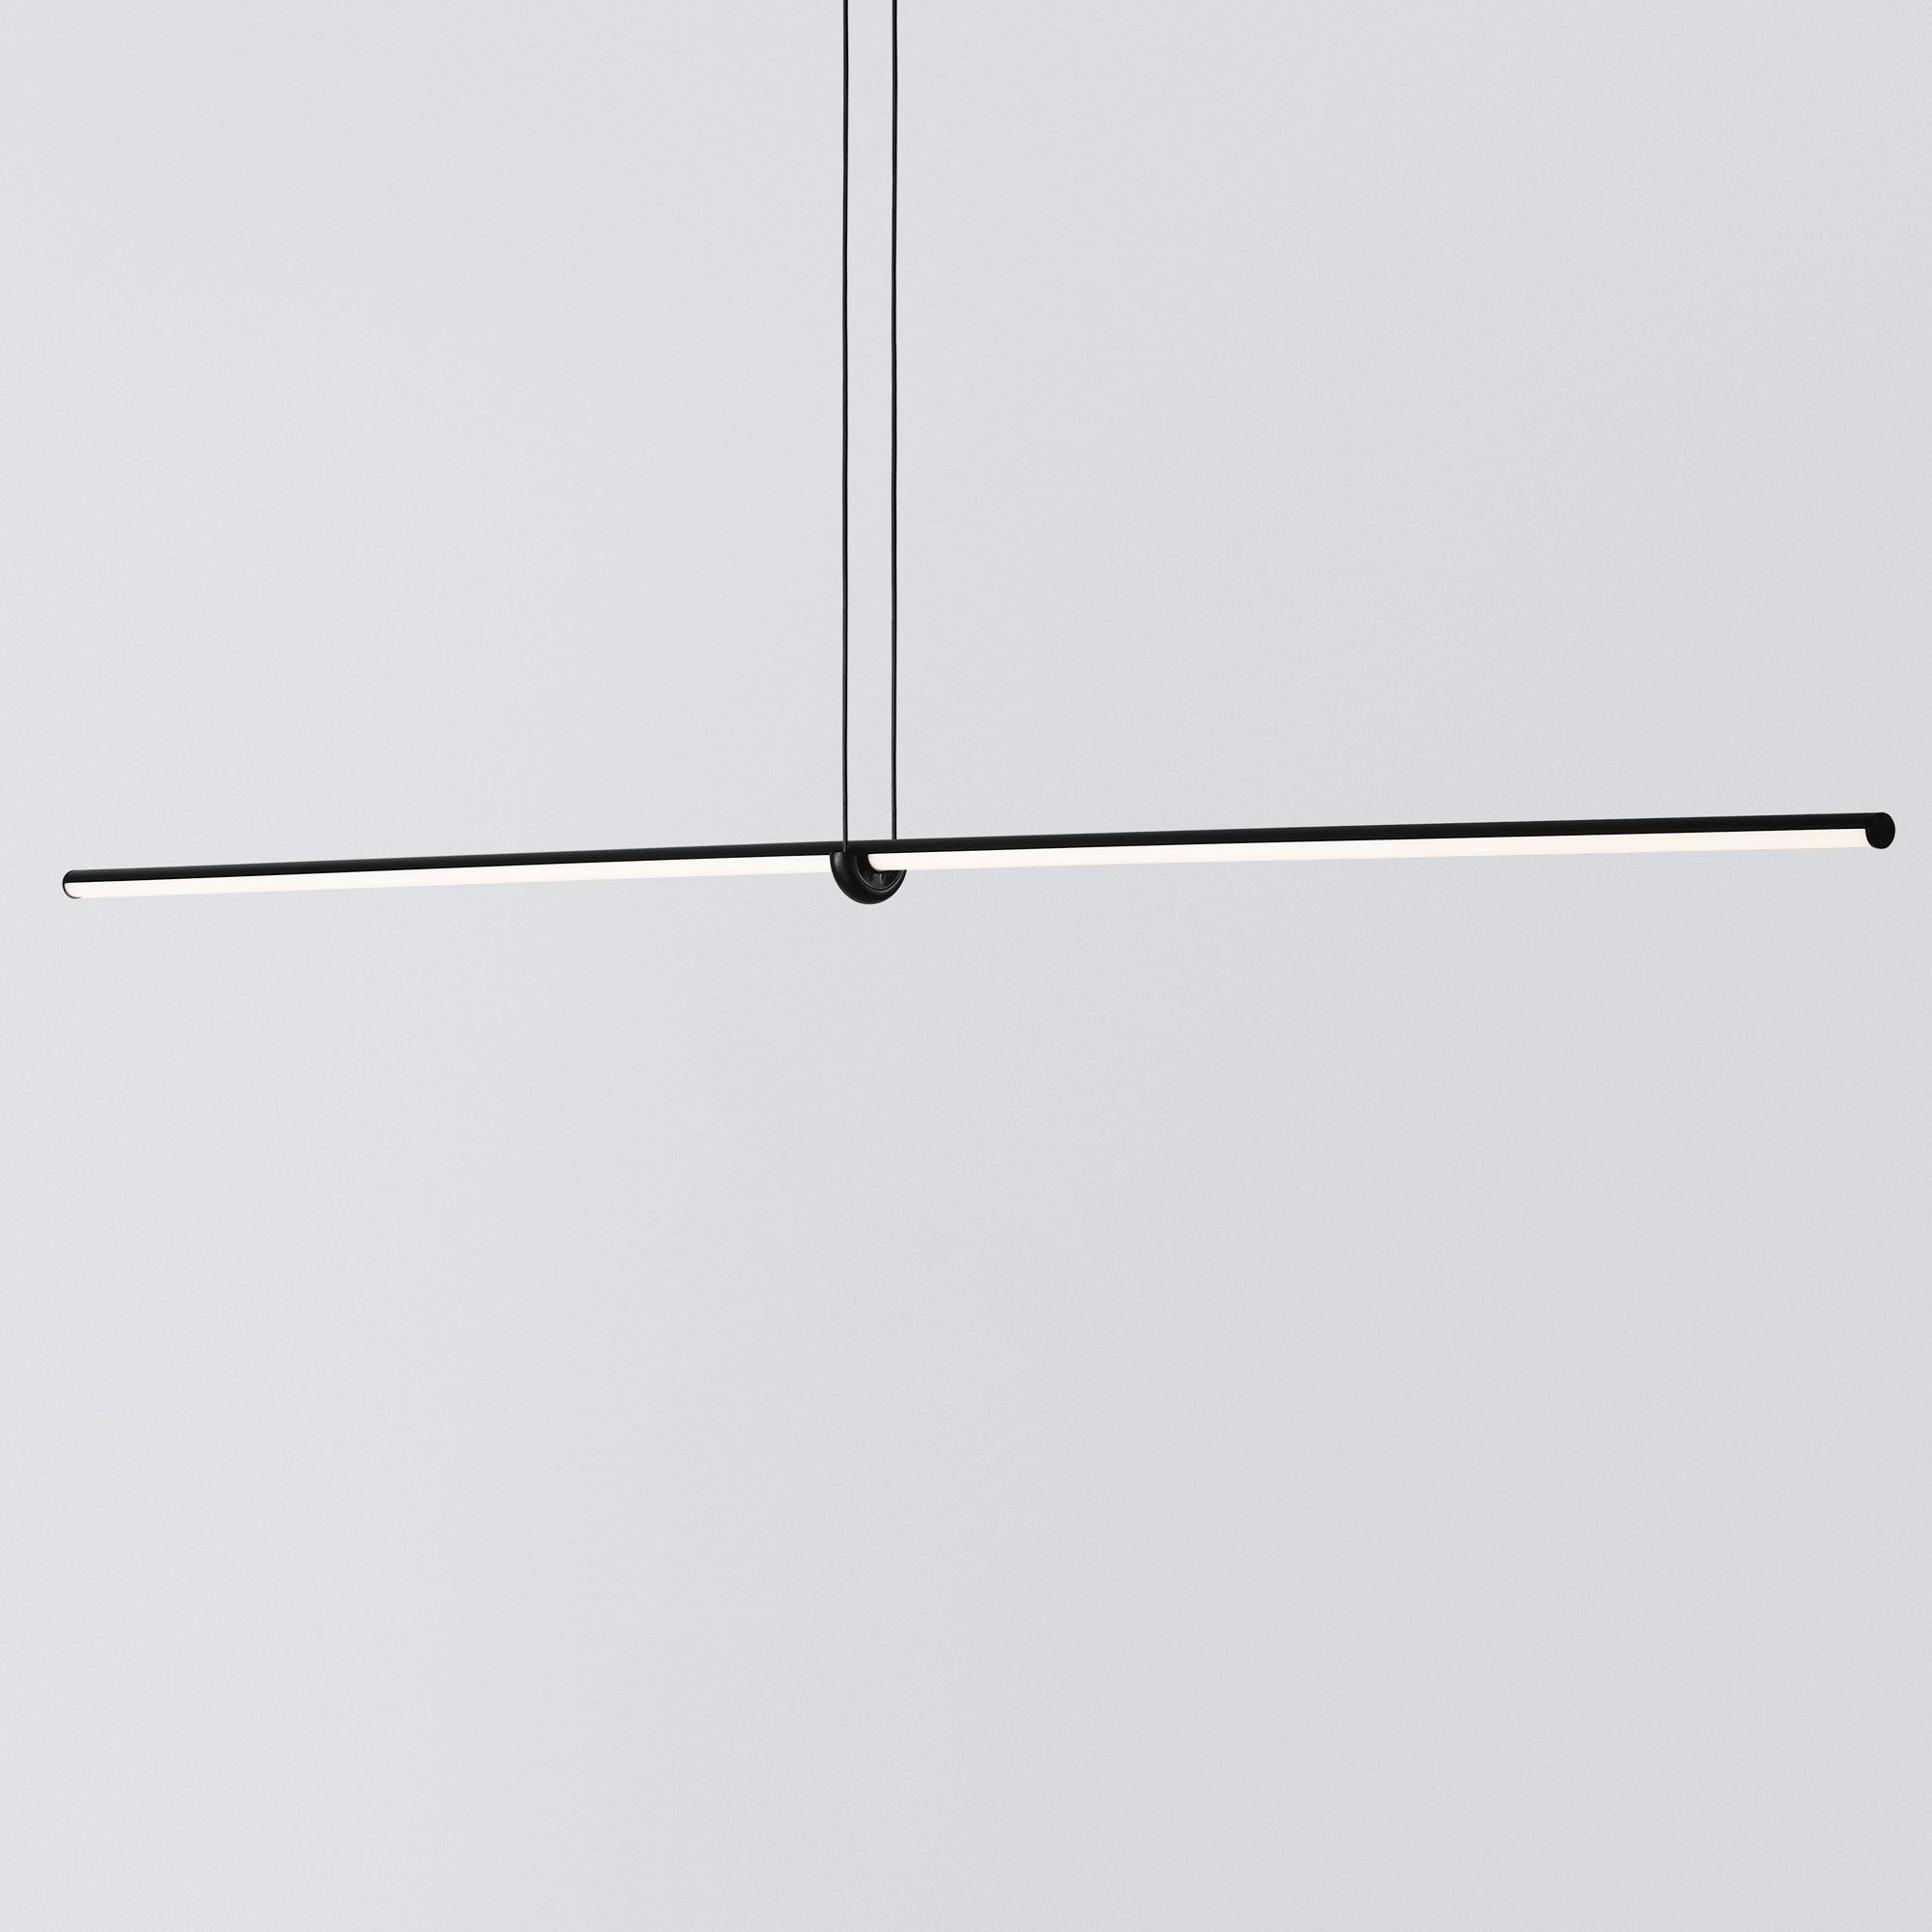 Arrangements Line Suspension By Flos Lighting Lc Arrnge Line Geometric Lighting Linear Pendant Lighting Flos